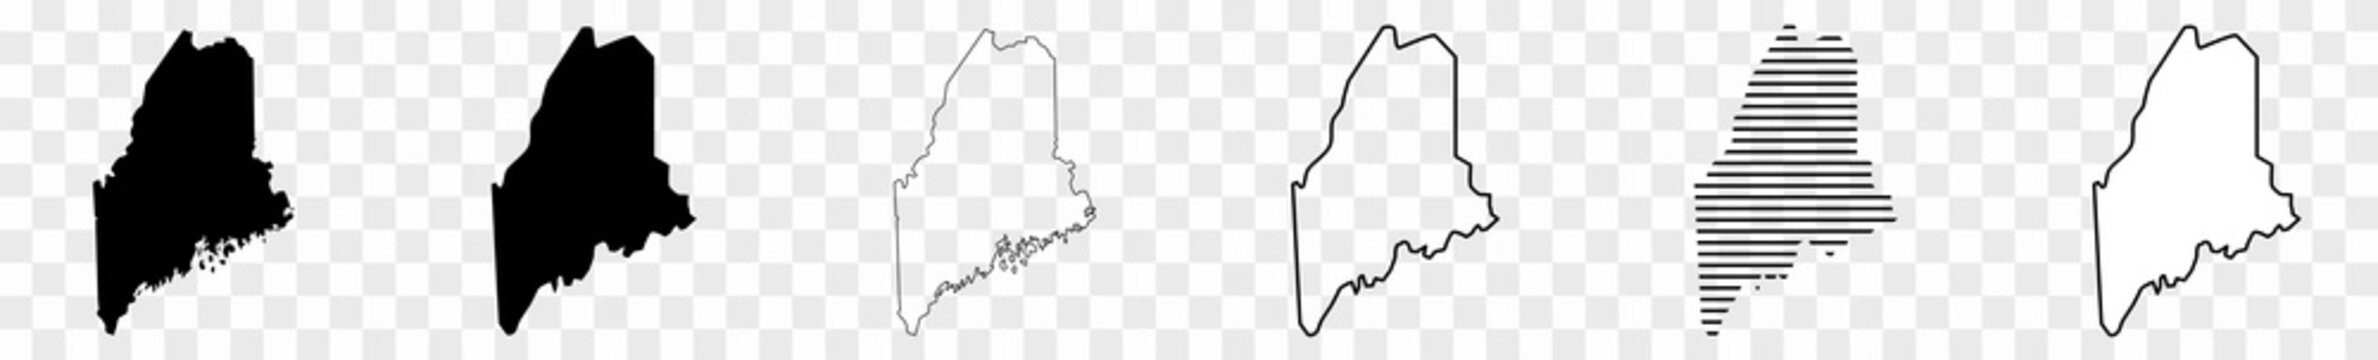 Maine Map Black | State Border | United States | US America | Transparent Isolated | Variations